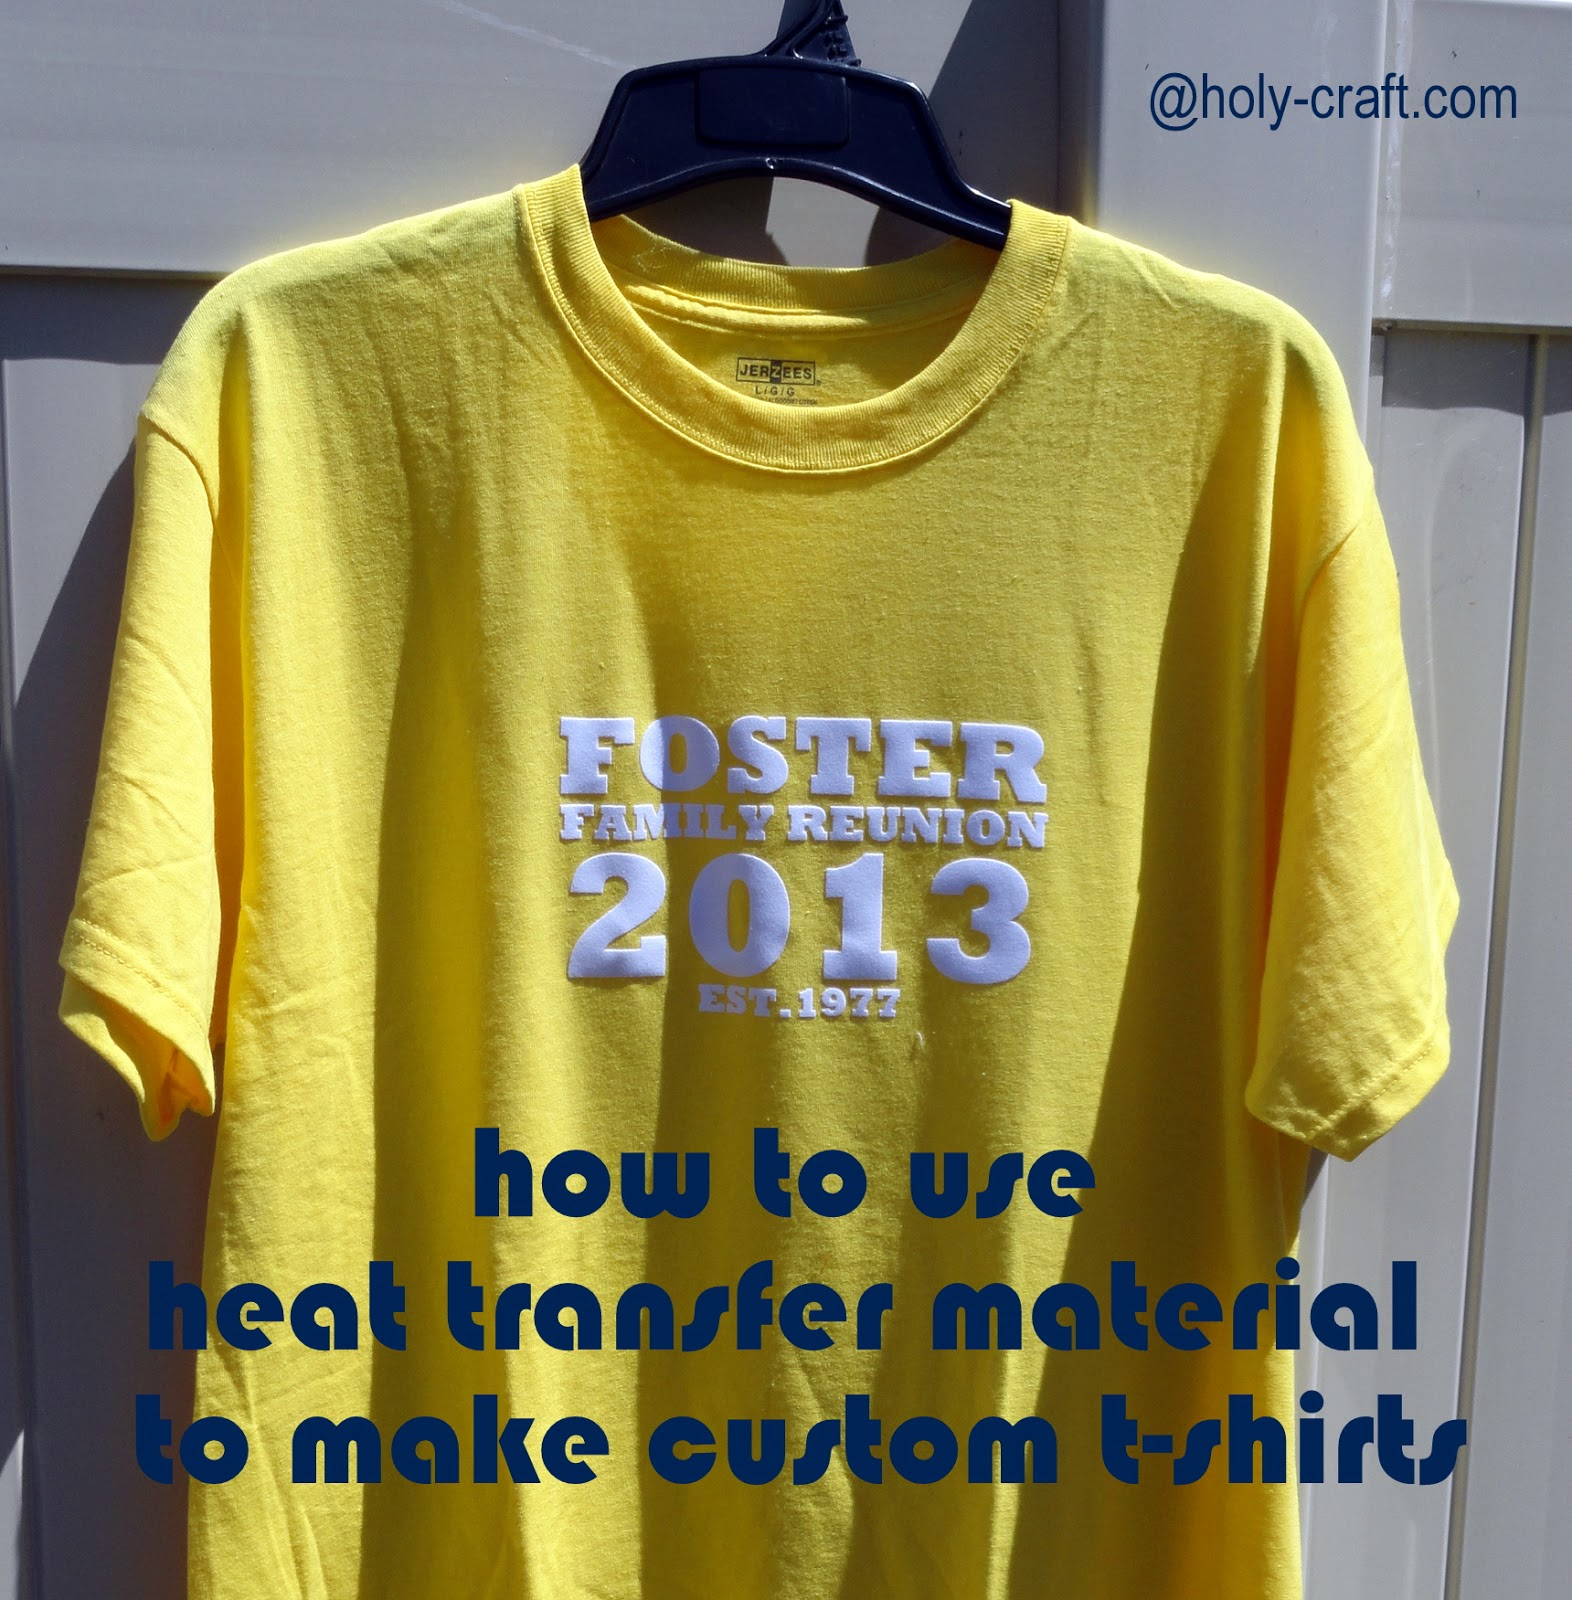 How To Make Custom T Shirts With Heat Transfer Material Rachel Teodoro